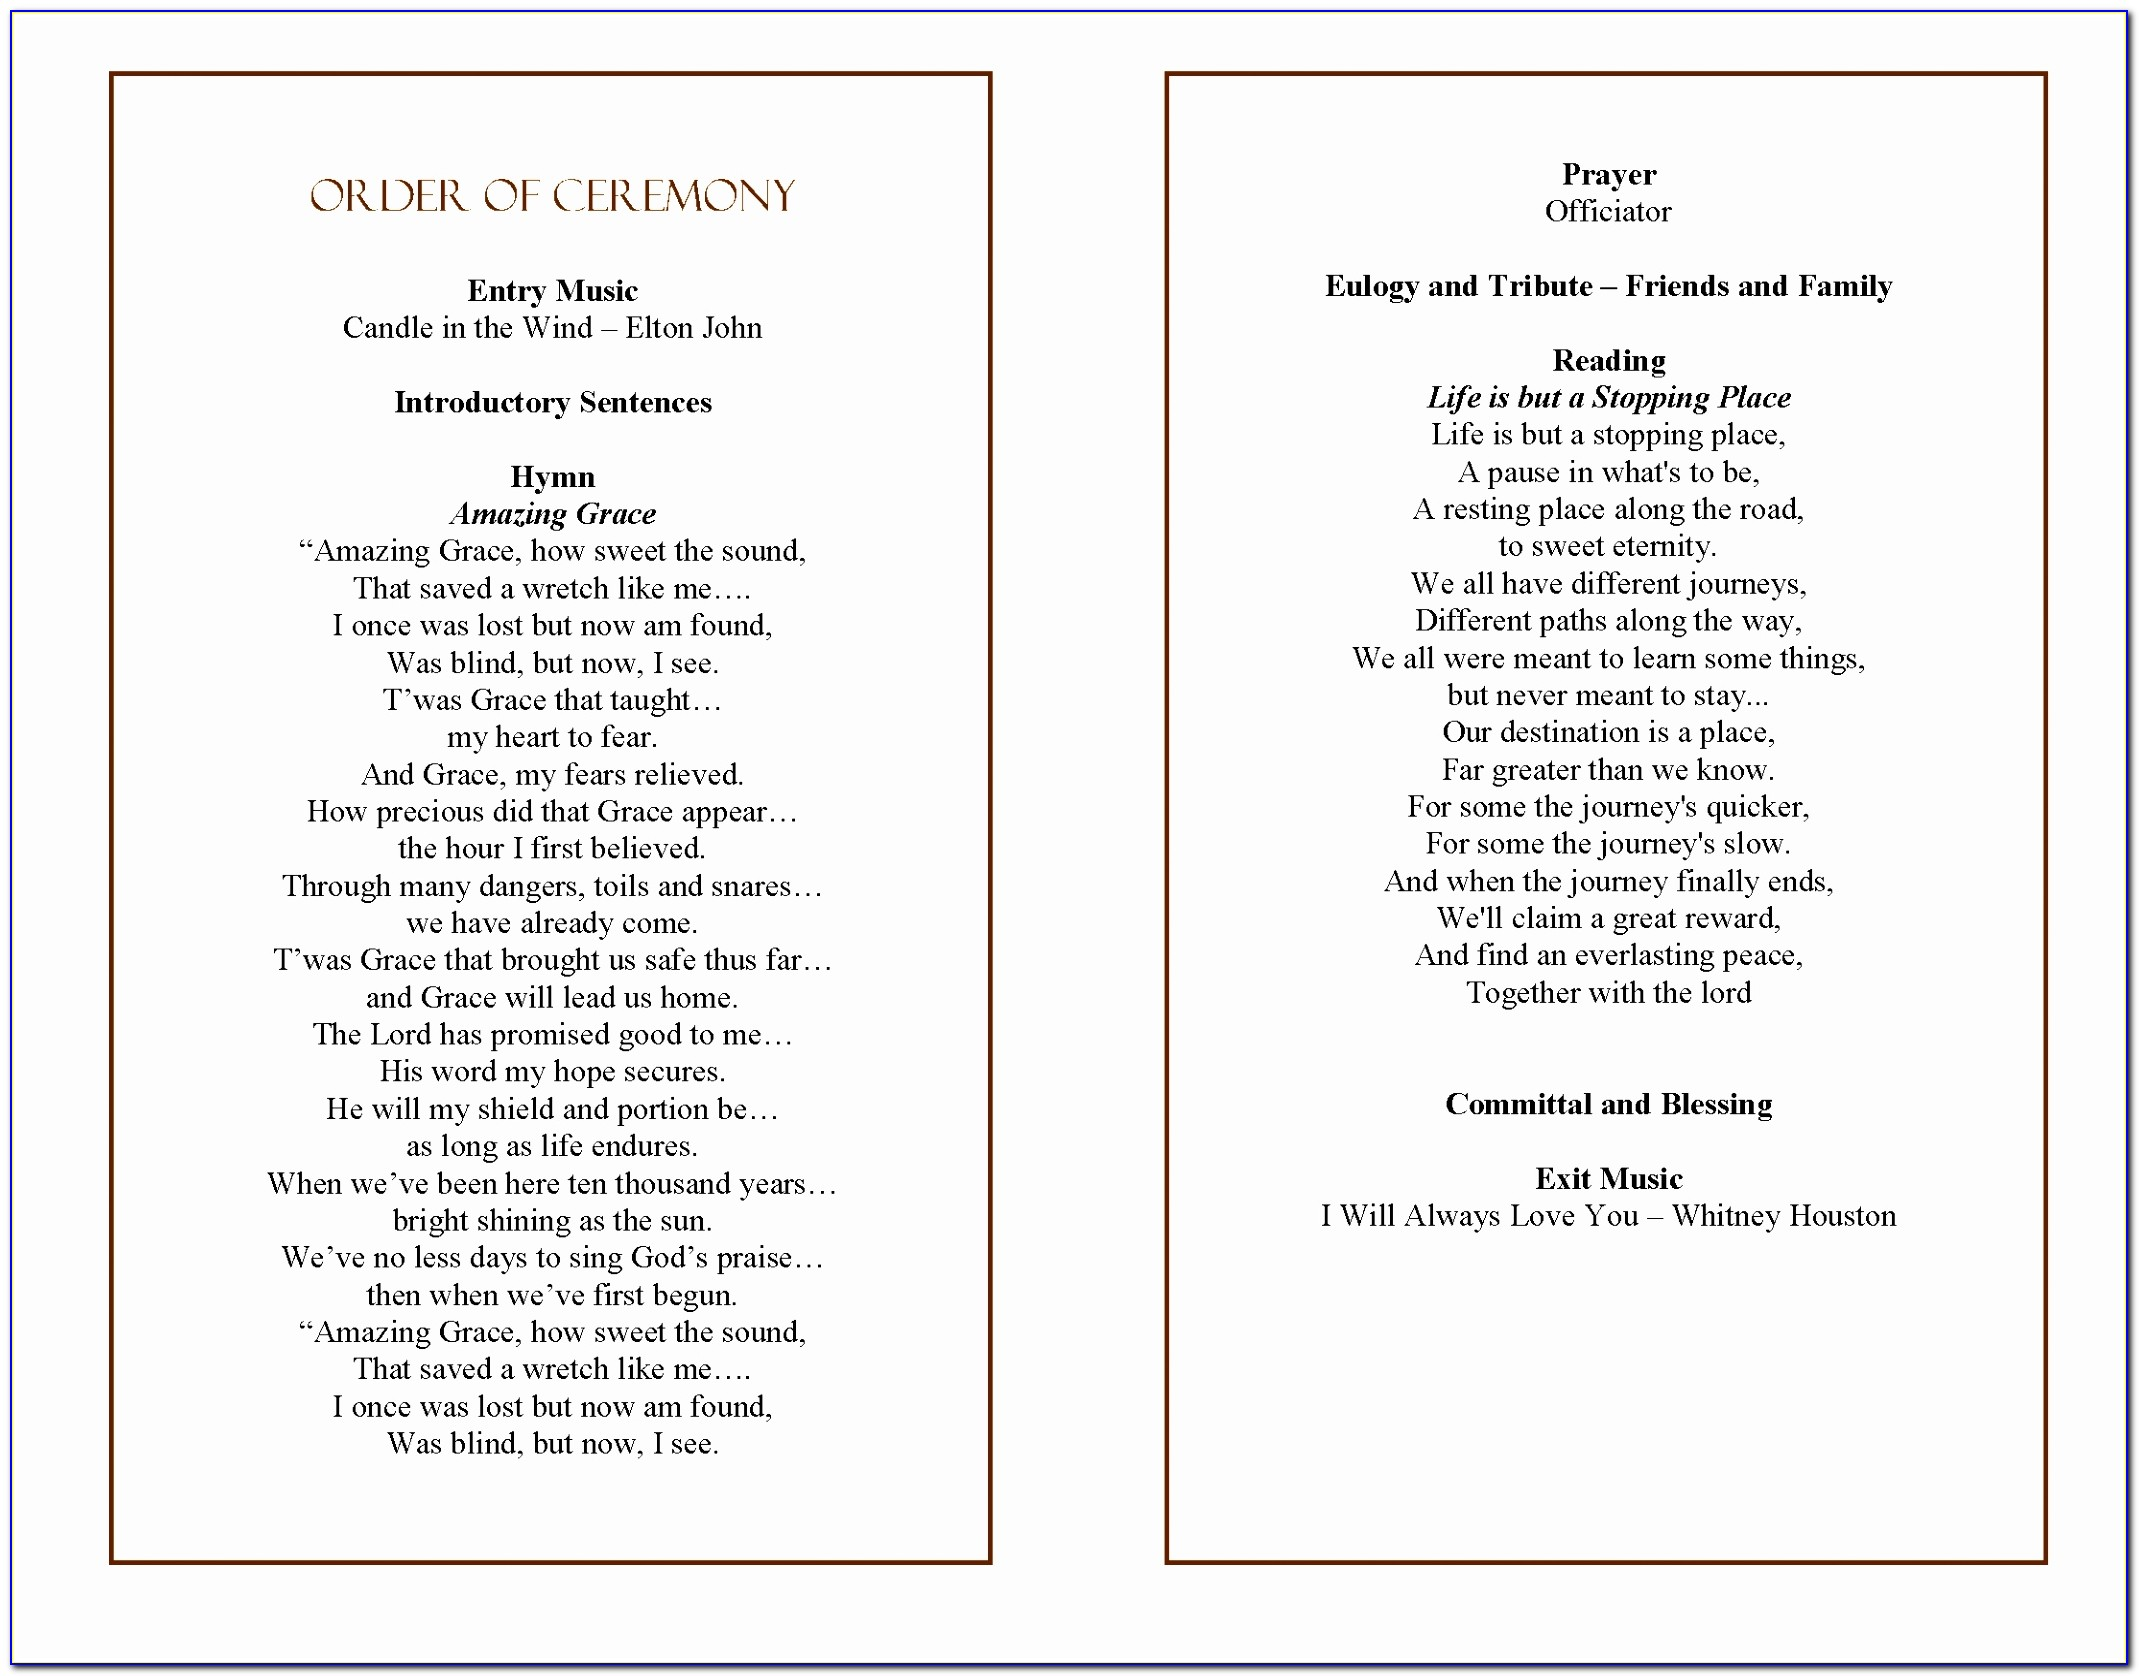 Funeral Program Quotes Quotesgram Printable Order Of Service For Funeral Template Inspirational Pdf Word Excel Templates Iupia